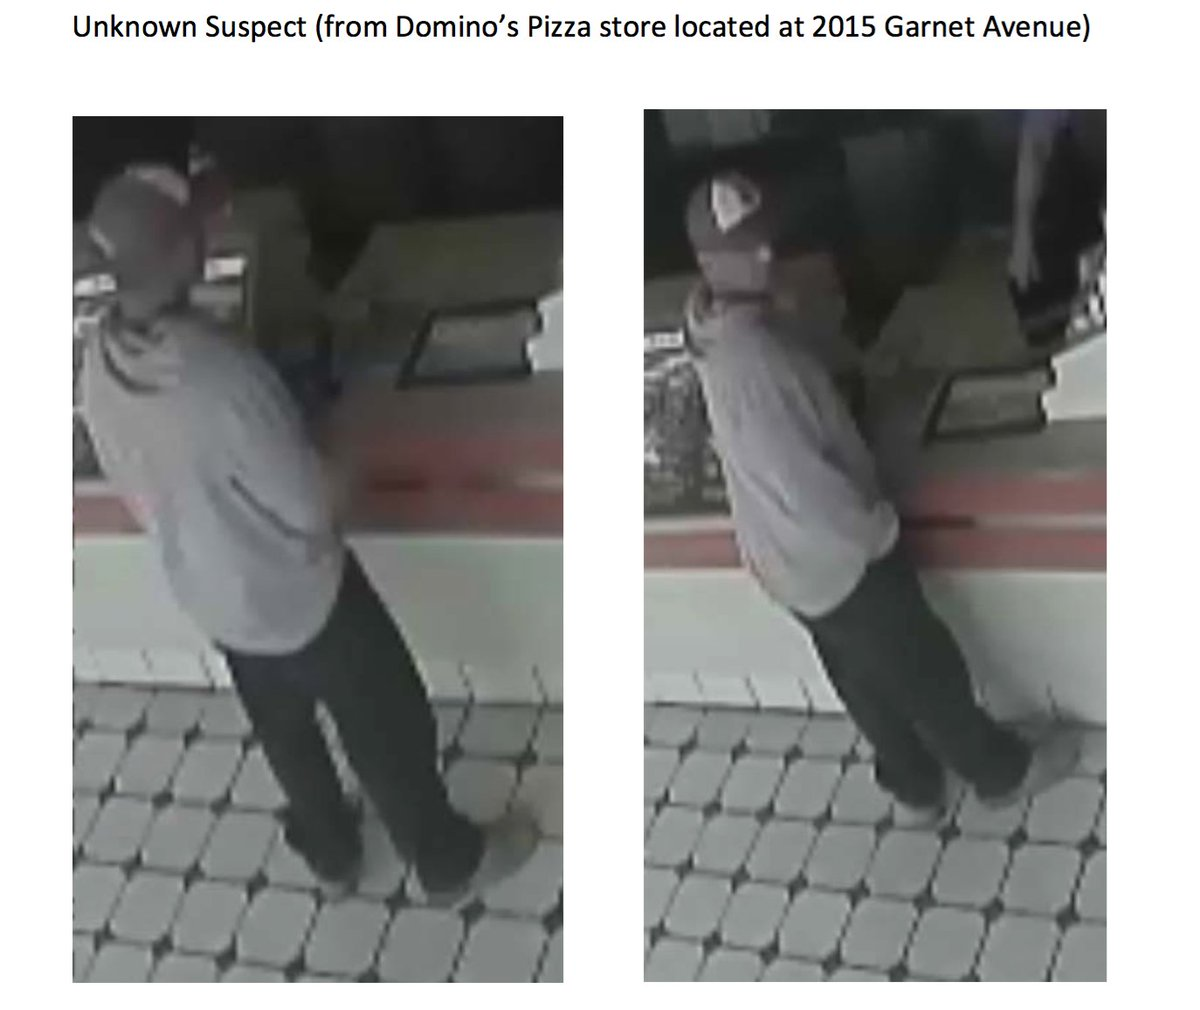 HAVE YOU SEEN HIM? Police seek help to identify Pacific Beach @dominos armed robbery suspect https://t.co/timj24zQg9